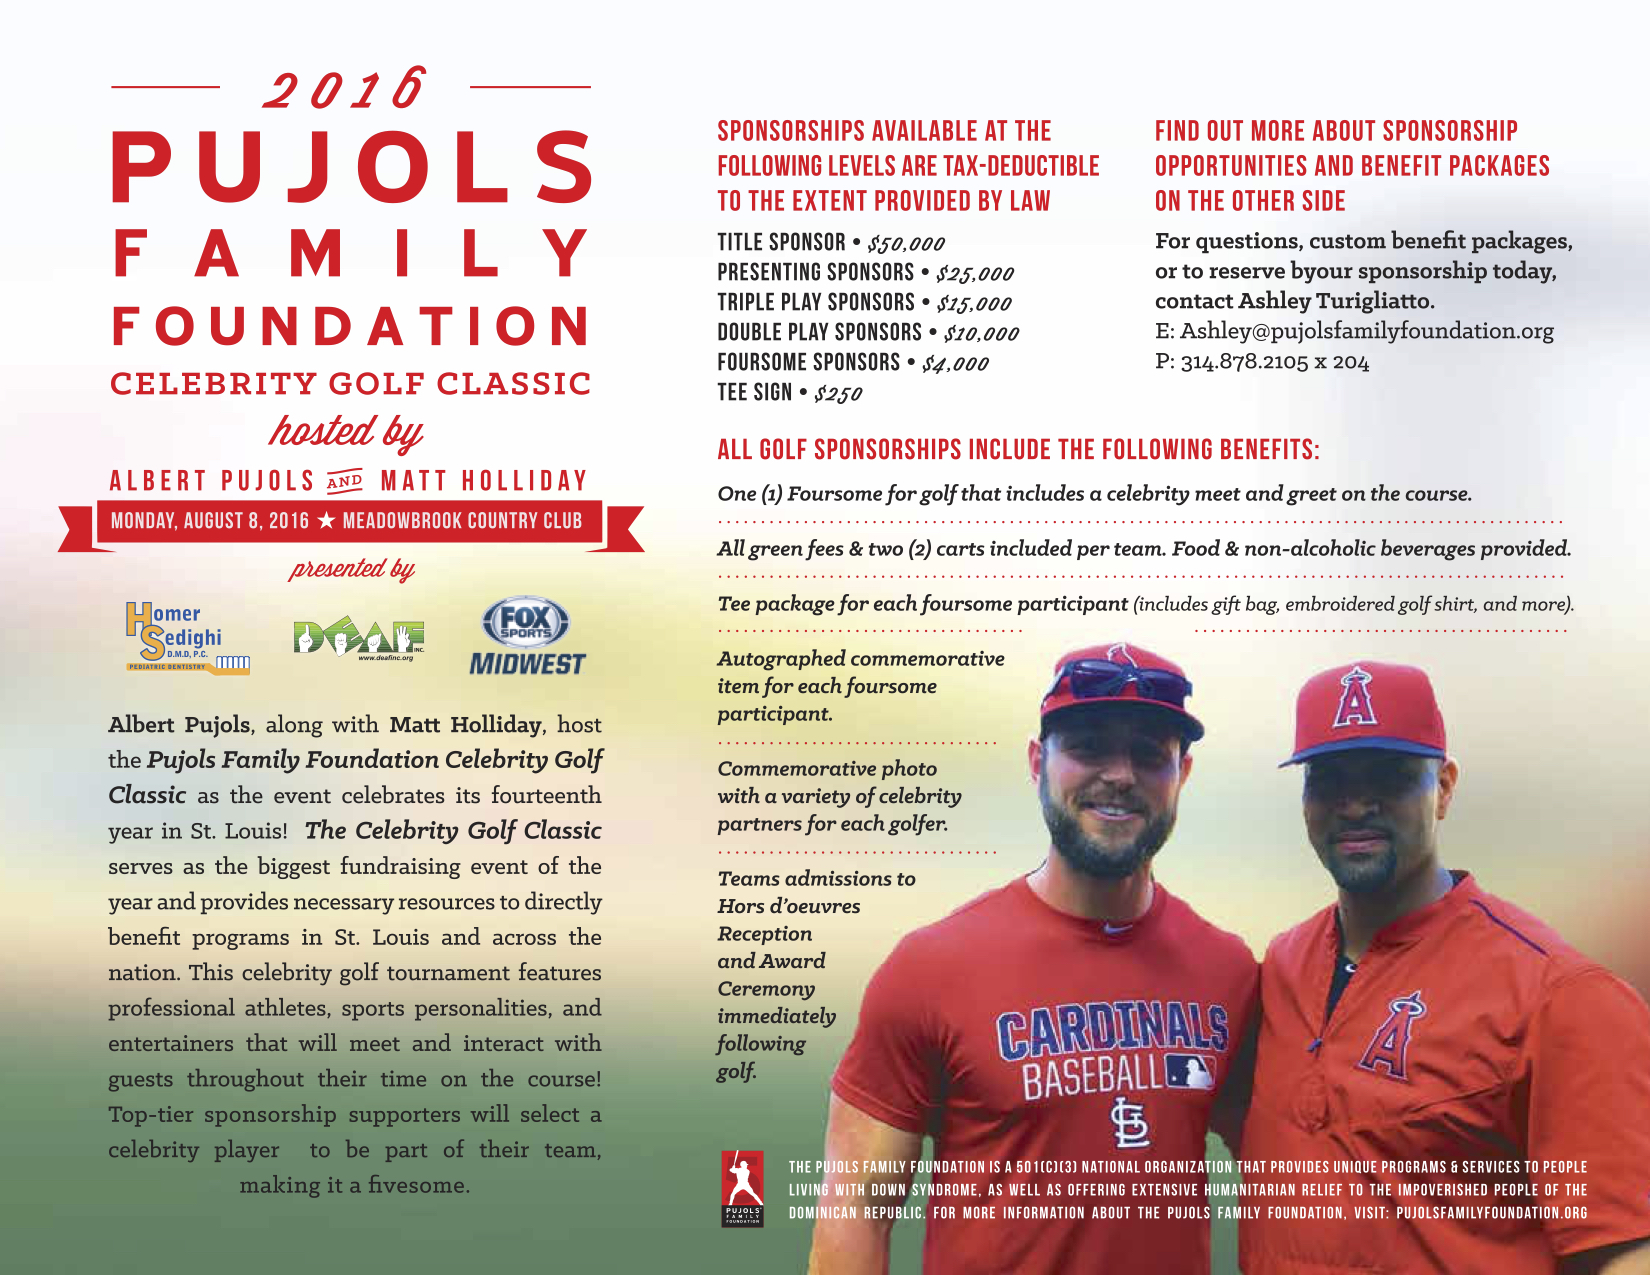 2016 Pujols Family Foundation Golf Sponsorship